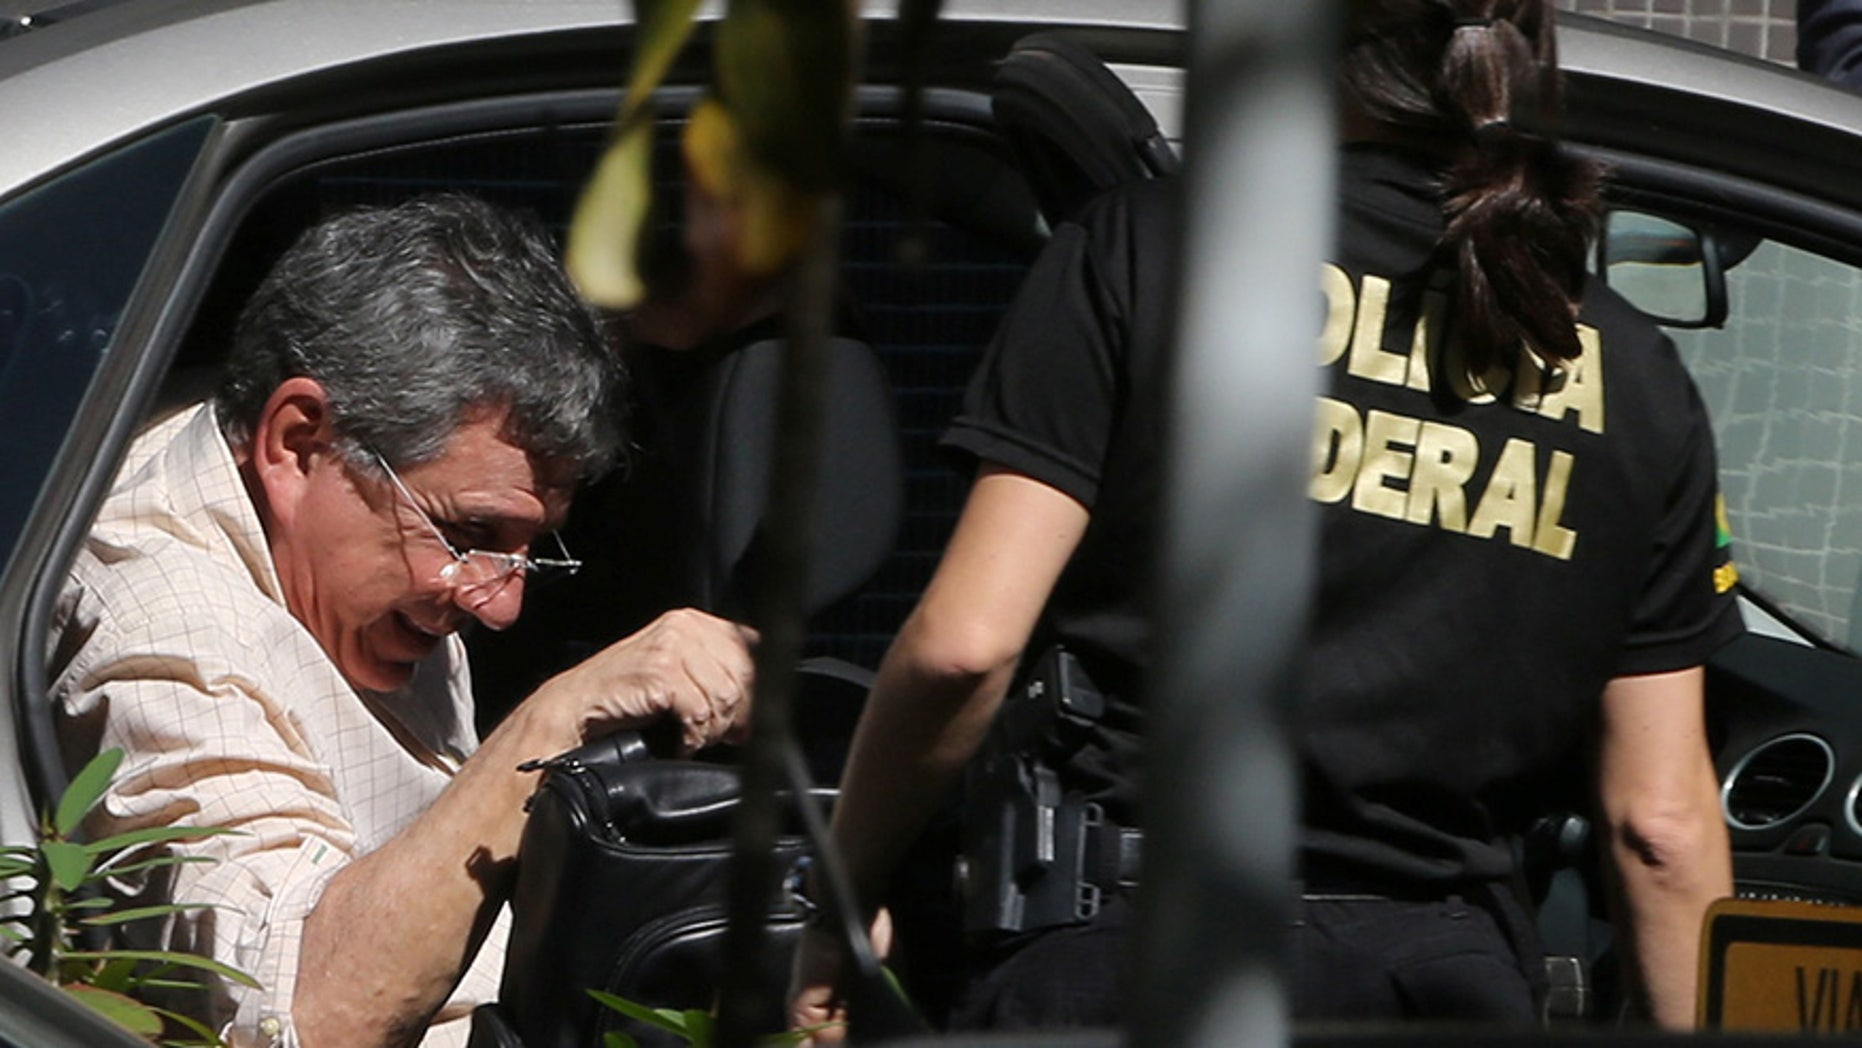 Tadeu Filippelli arrives at the Federal Police headquarter after he was arrested in Brasilia on May 23, 2017.